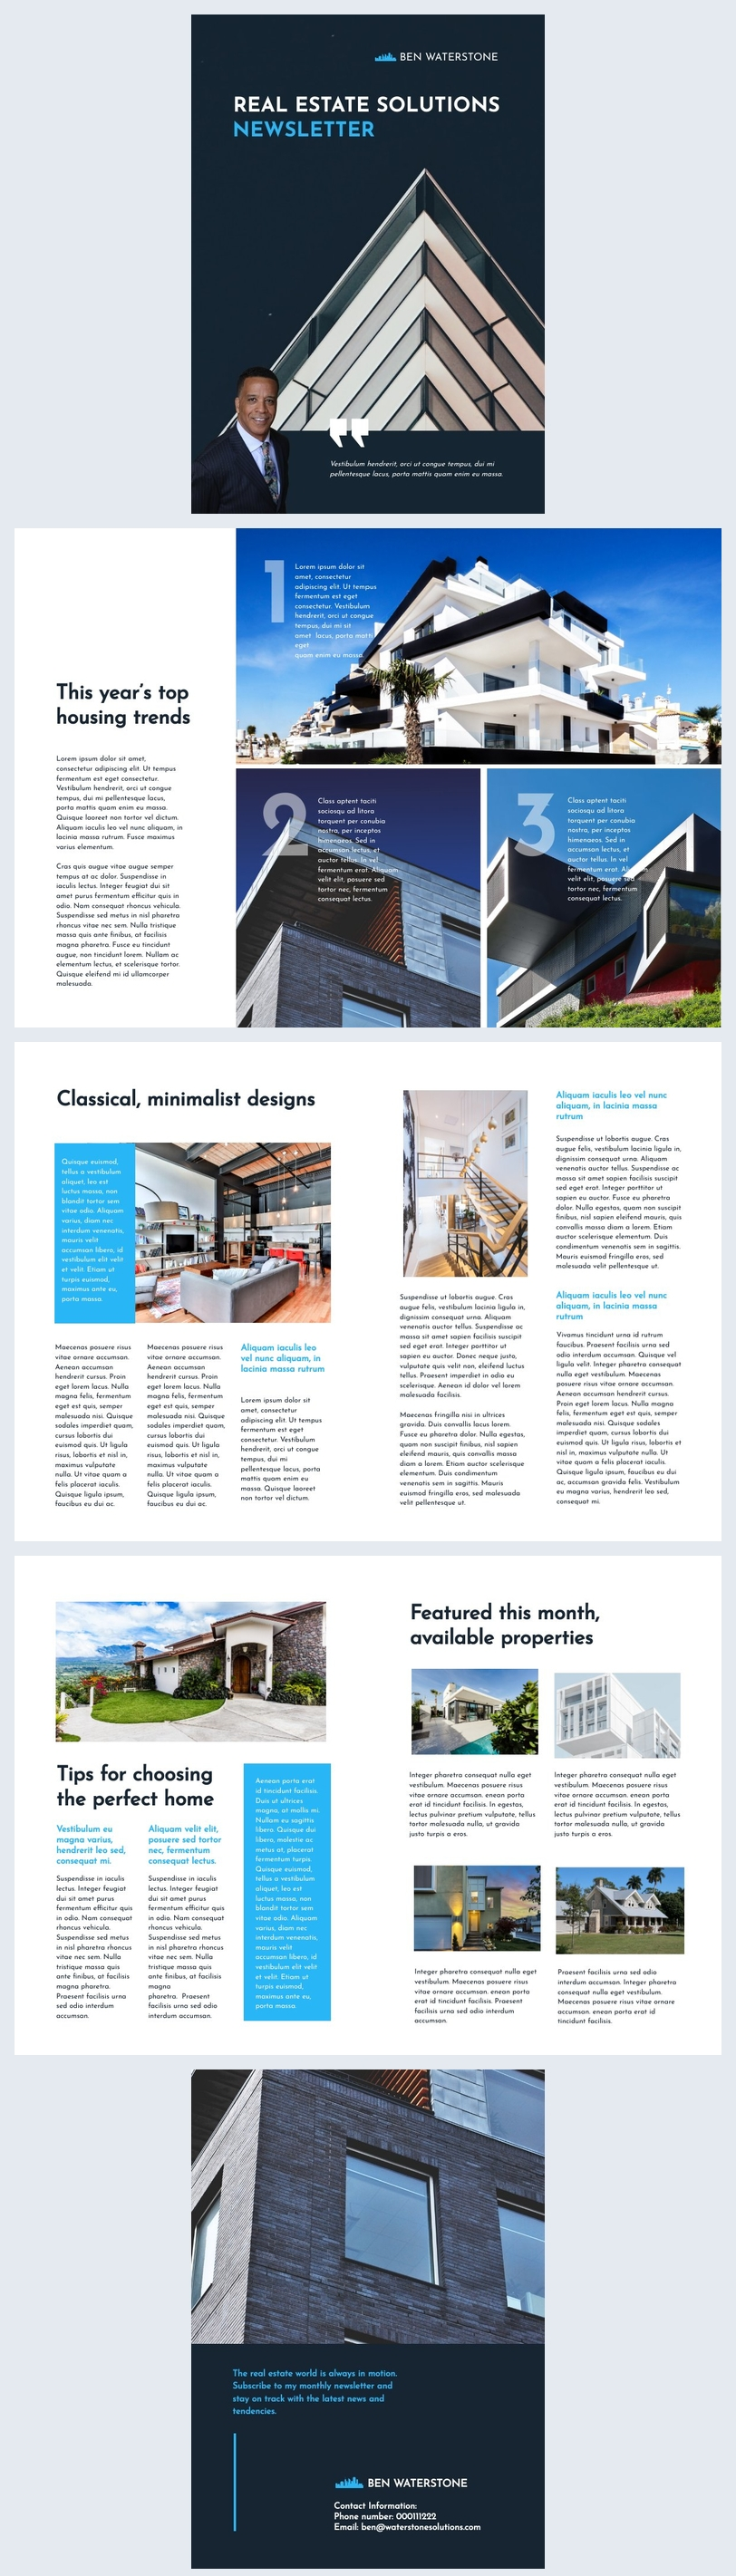 Immobilienmakler-Newsletter Design-Idee